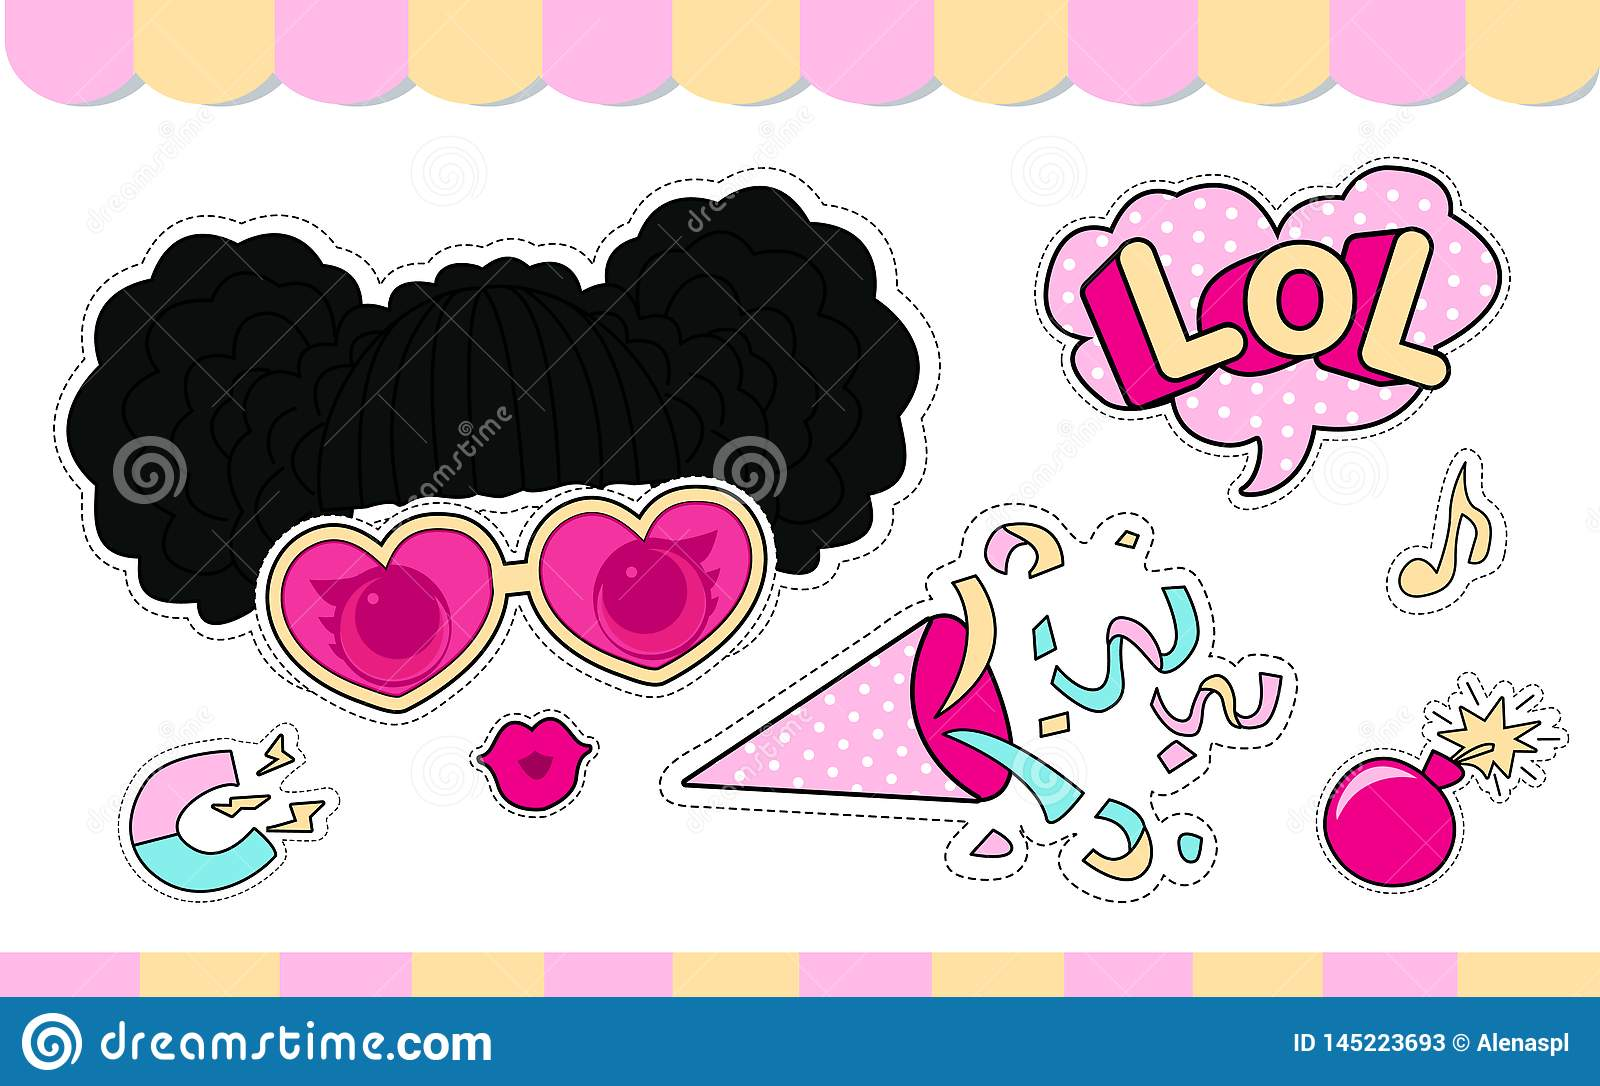 Set of cute girlish  stickers for lol doll party. Element of design for invite card.